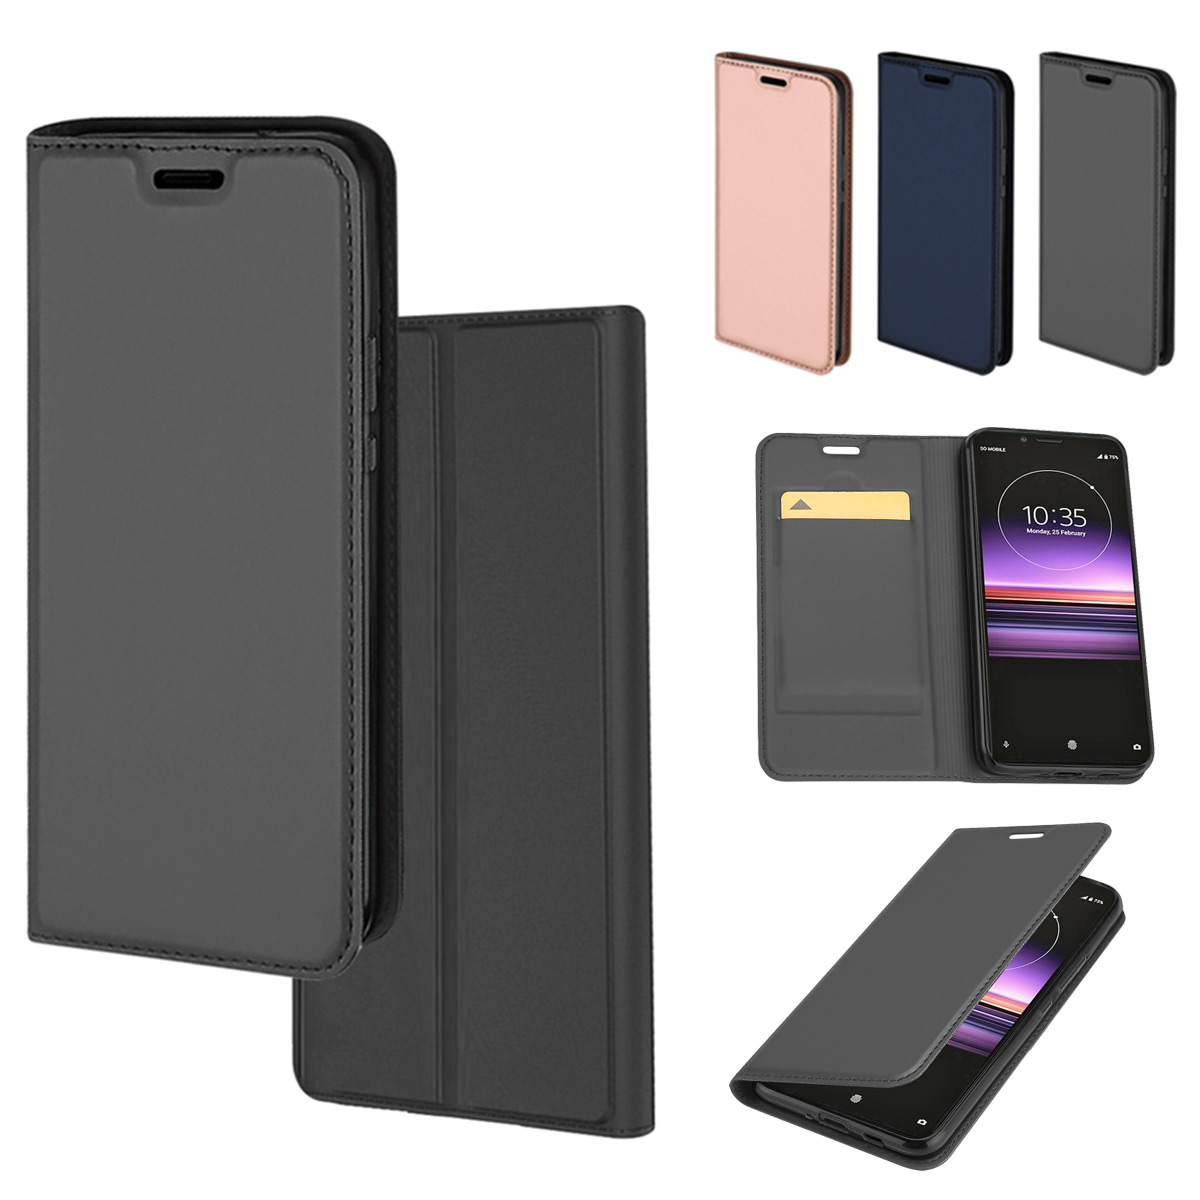 6.1 Kickstand and Card Slots for Sony Xperia 5 II Phone Case Case Collection Premium Leather Folio Cover for Sony Xperia 5 II Case Magnetic Closure Full Protection Book Design Wallet Flip with